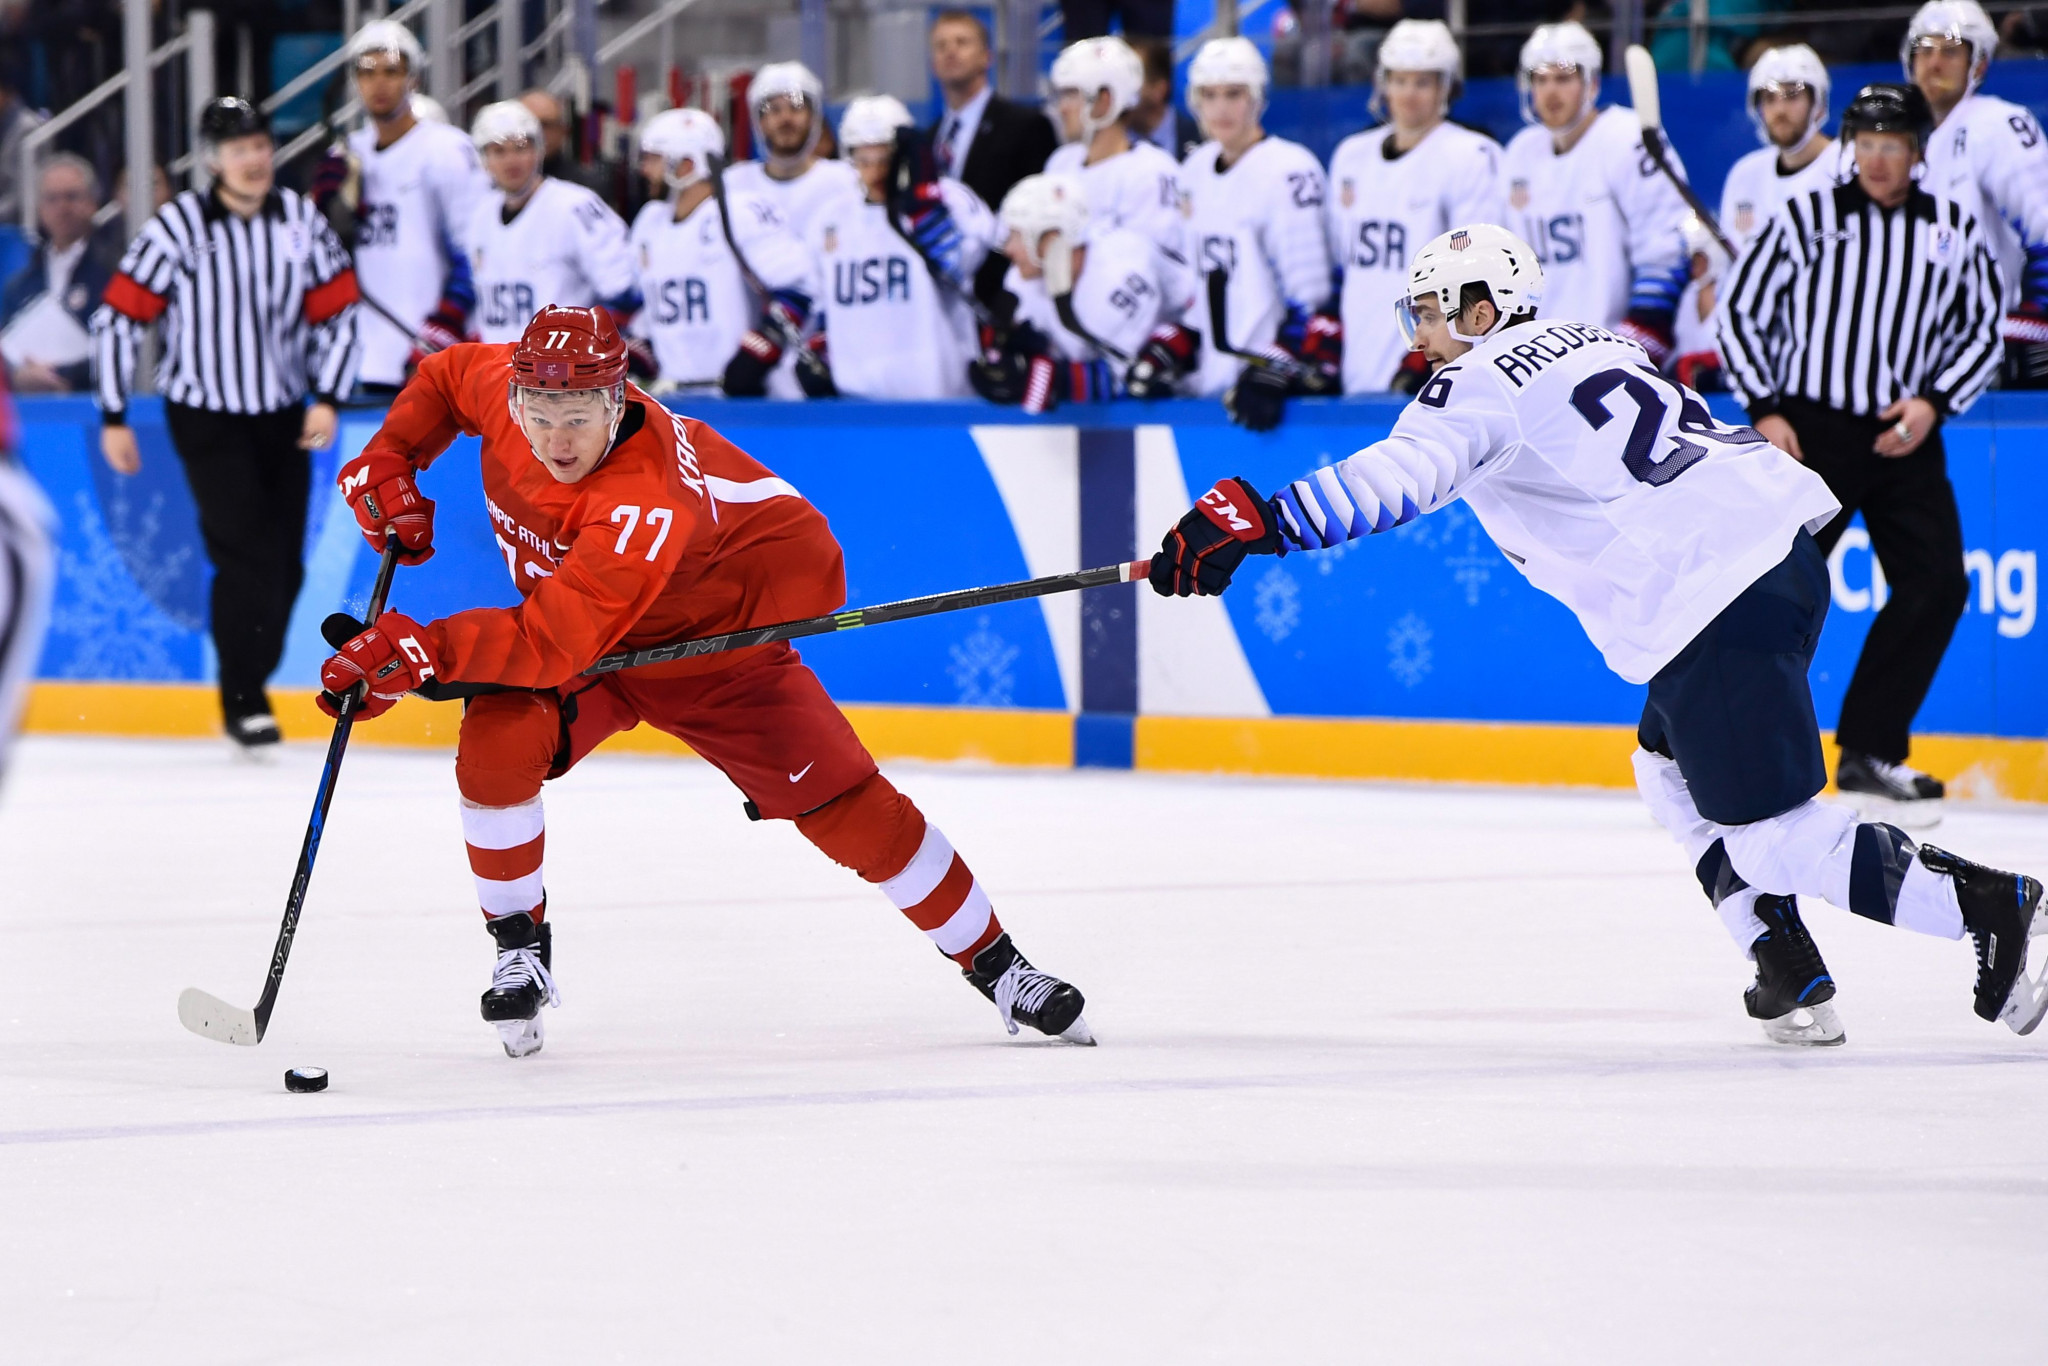 The Olympic Athletes from Russia thrashed United States today in ice hockey ©Getty Images